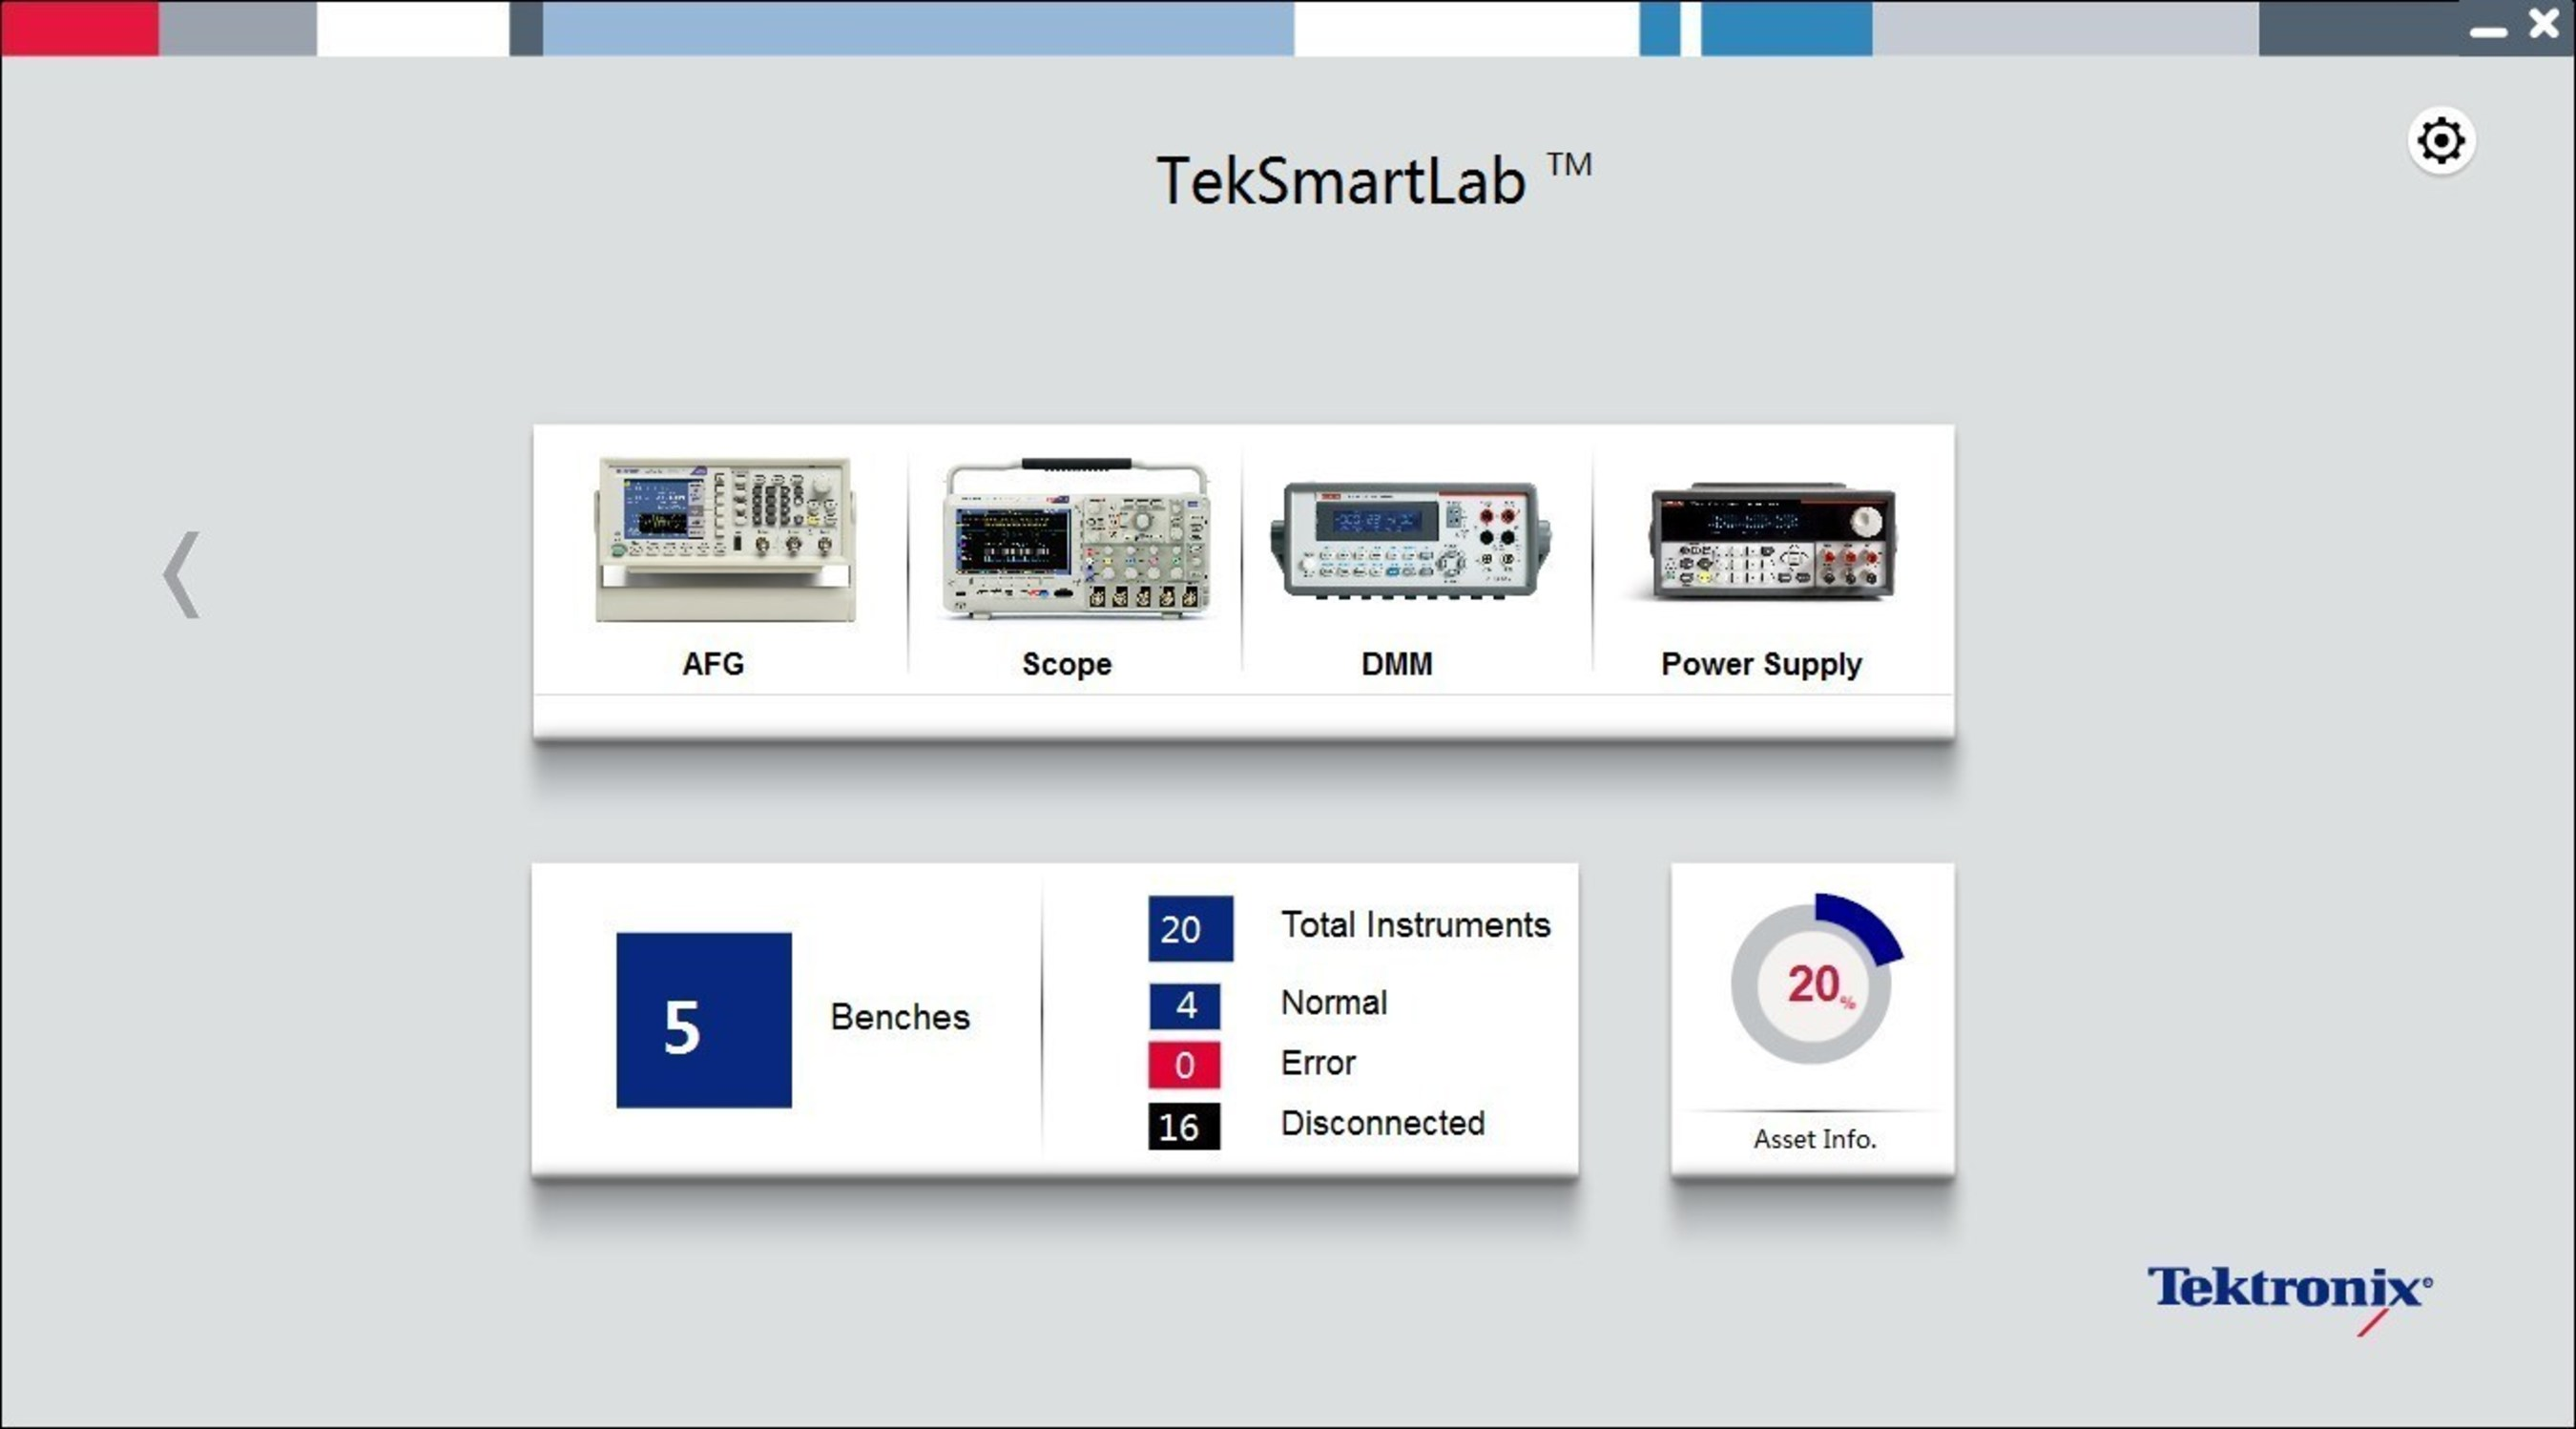 Tektronix Announces First Network-Based Lab Instrument Management Solution for Education